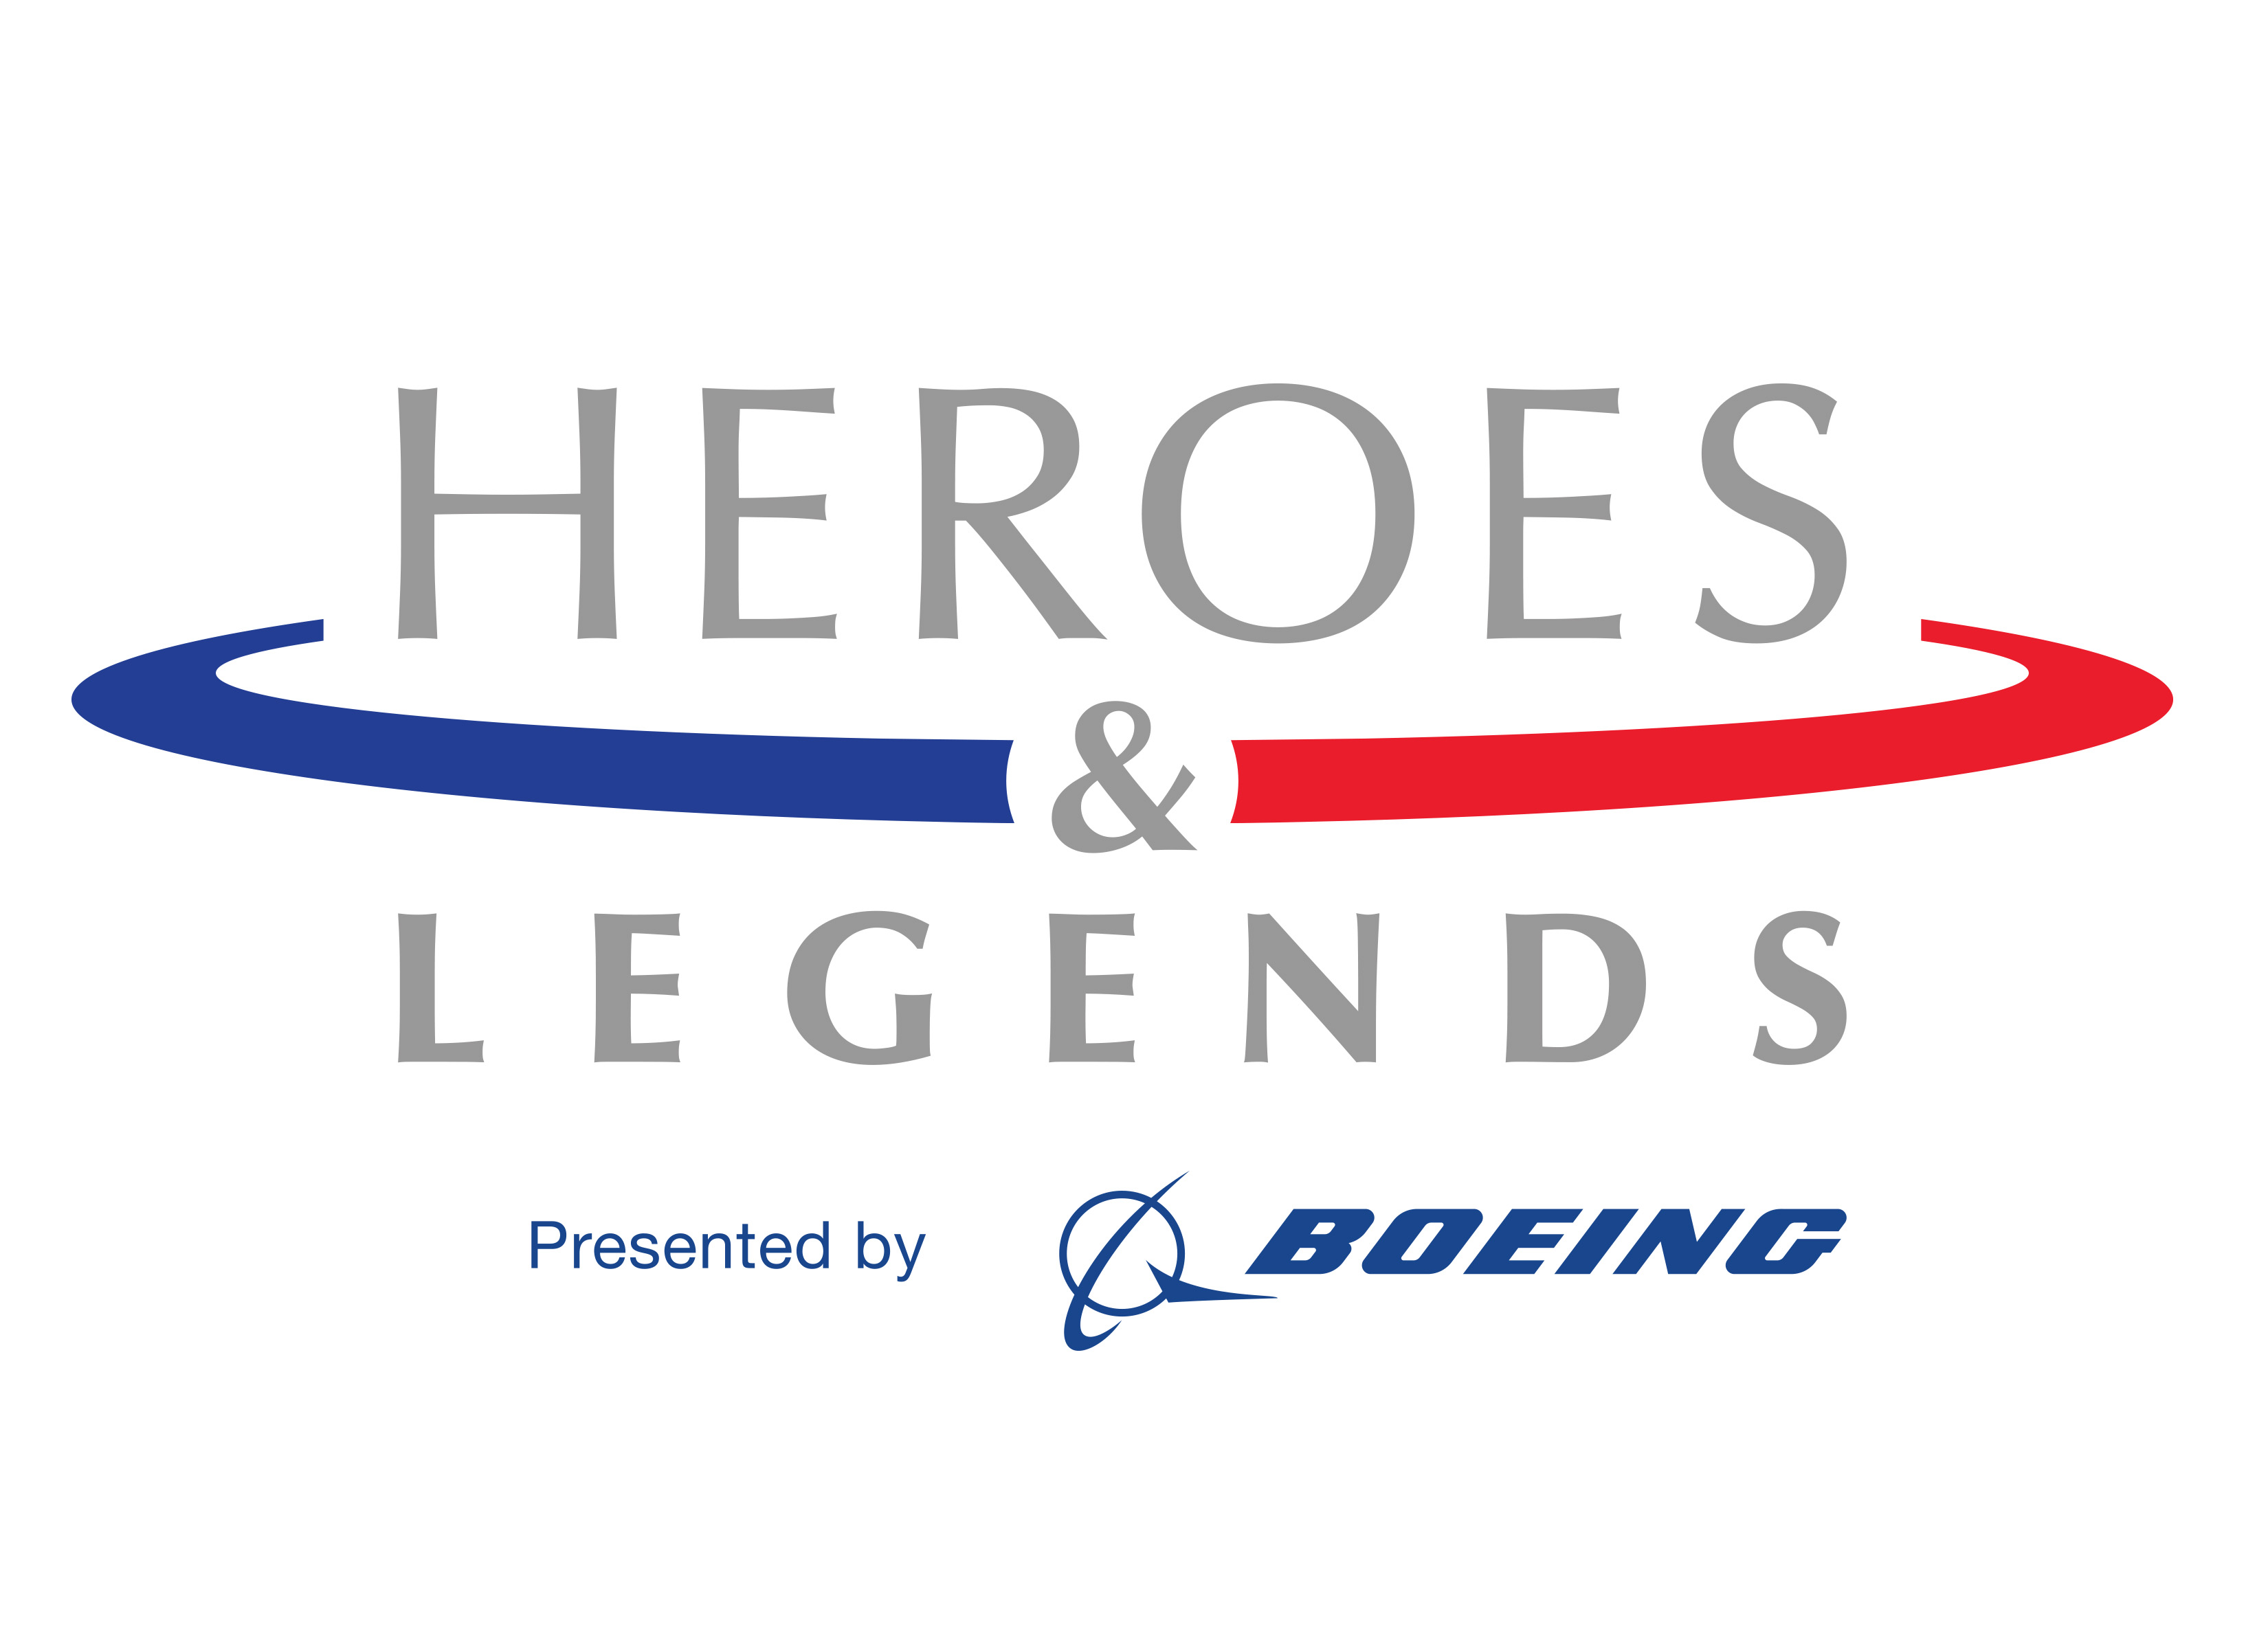 heroes and legends logo